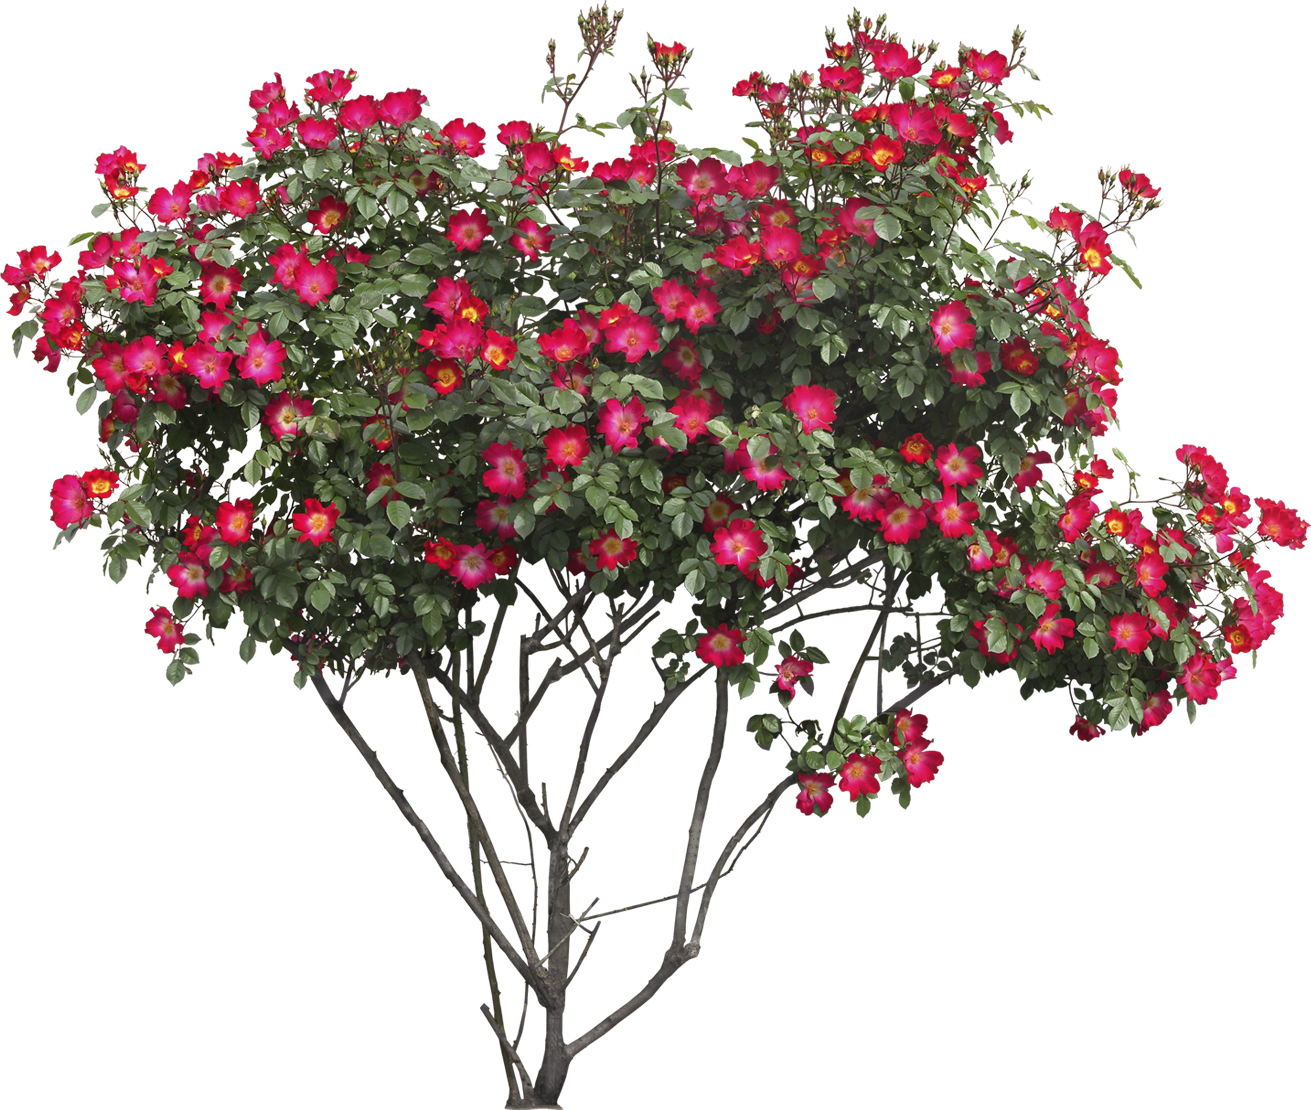 Flowering tree png. Bush with flowers image